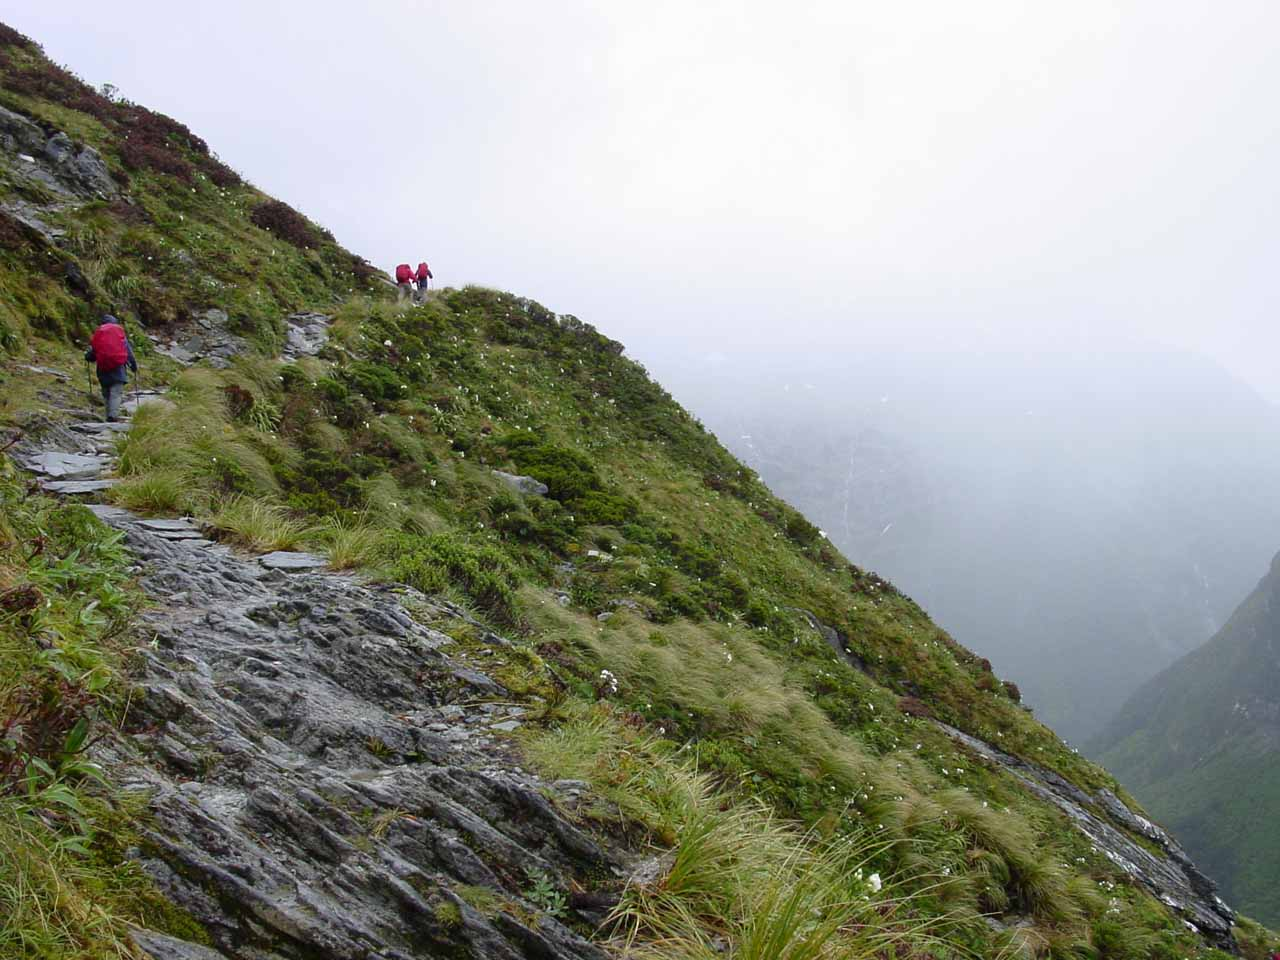 We experienced turbulent weather on our climb up to MacKinnon Pass